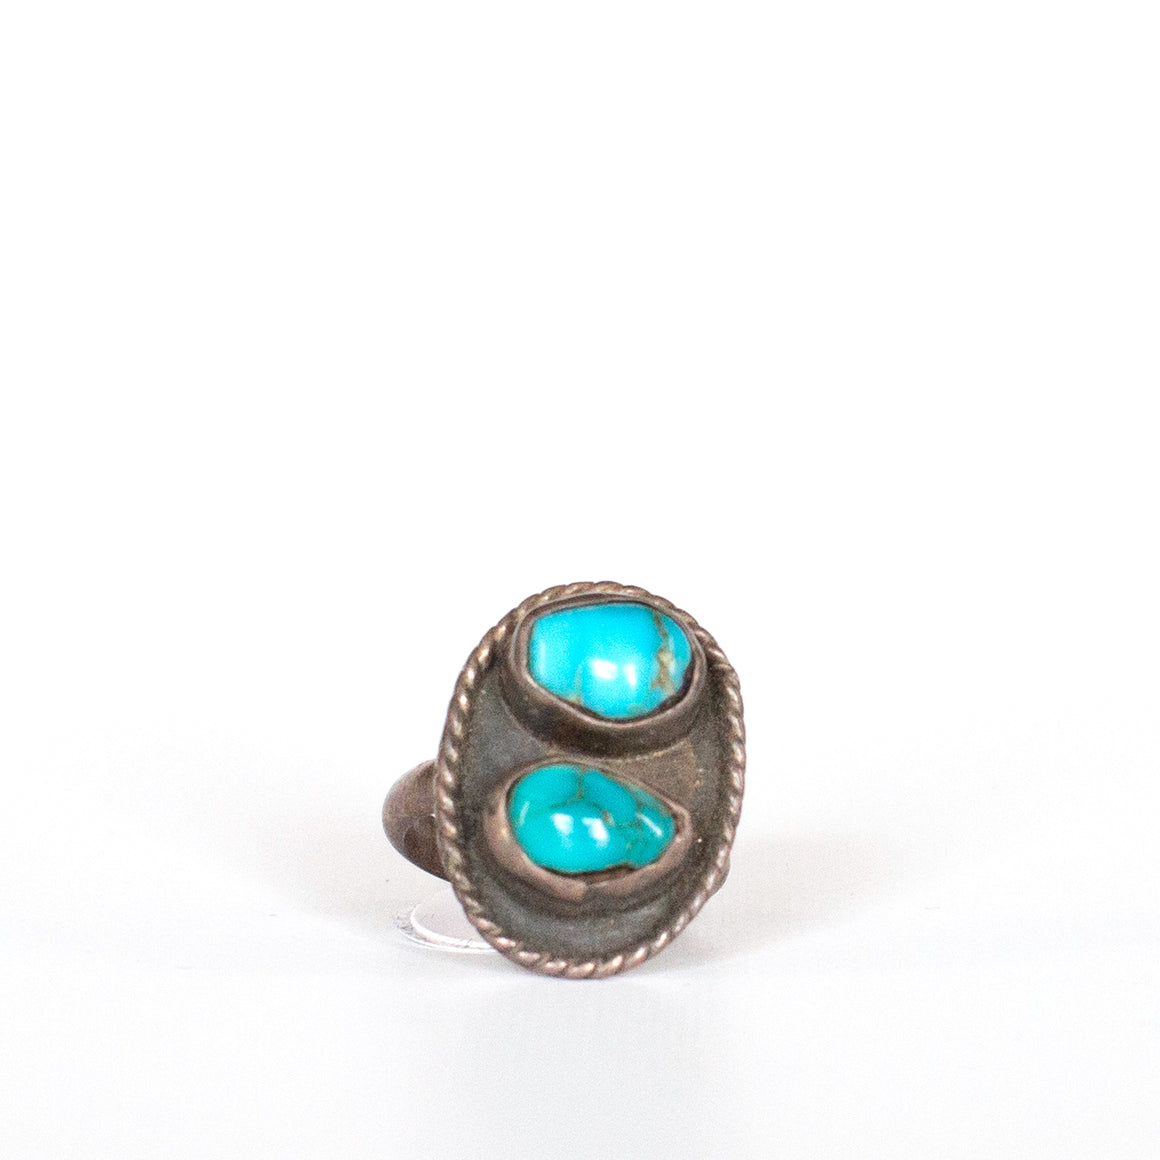 VINTAGE JEWELRY | STERLING DUAL-STONE TURQUOISE RING (SIZE 5.25)